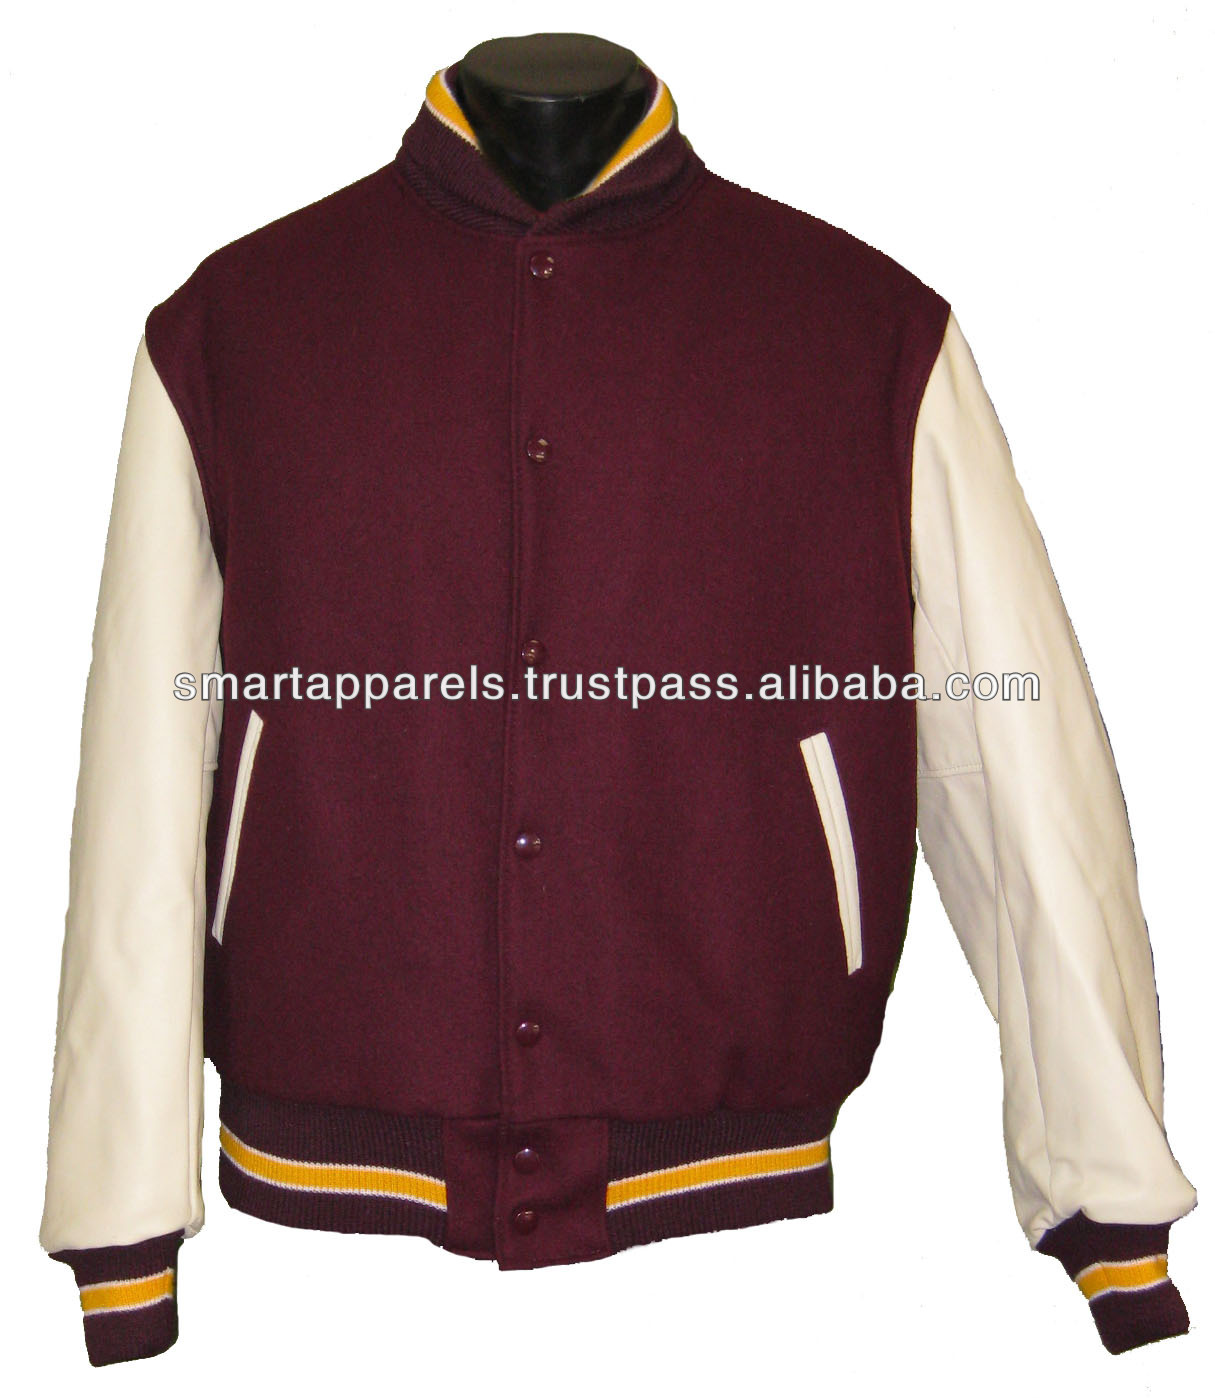 white leather sleeves varsity letterman jackets wholesale